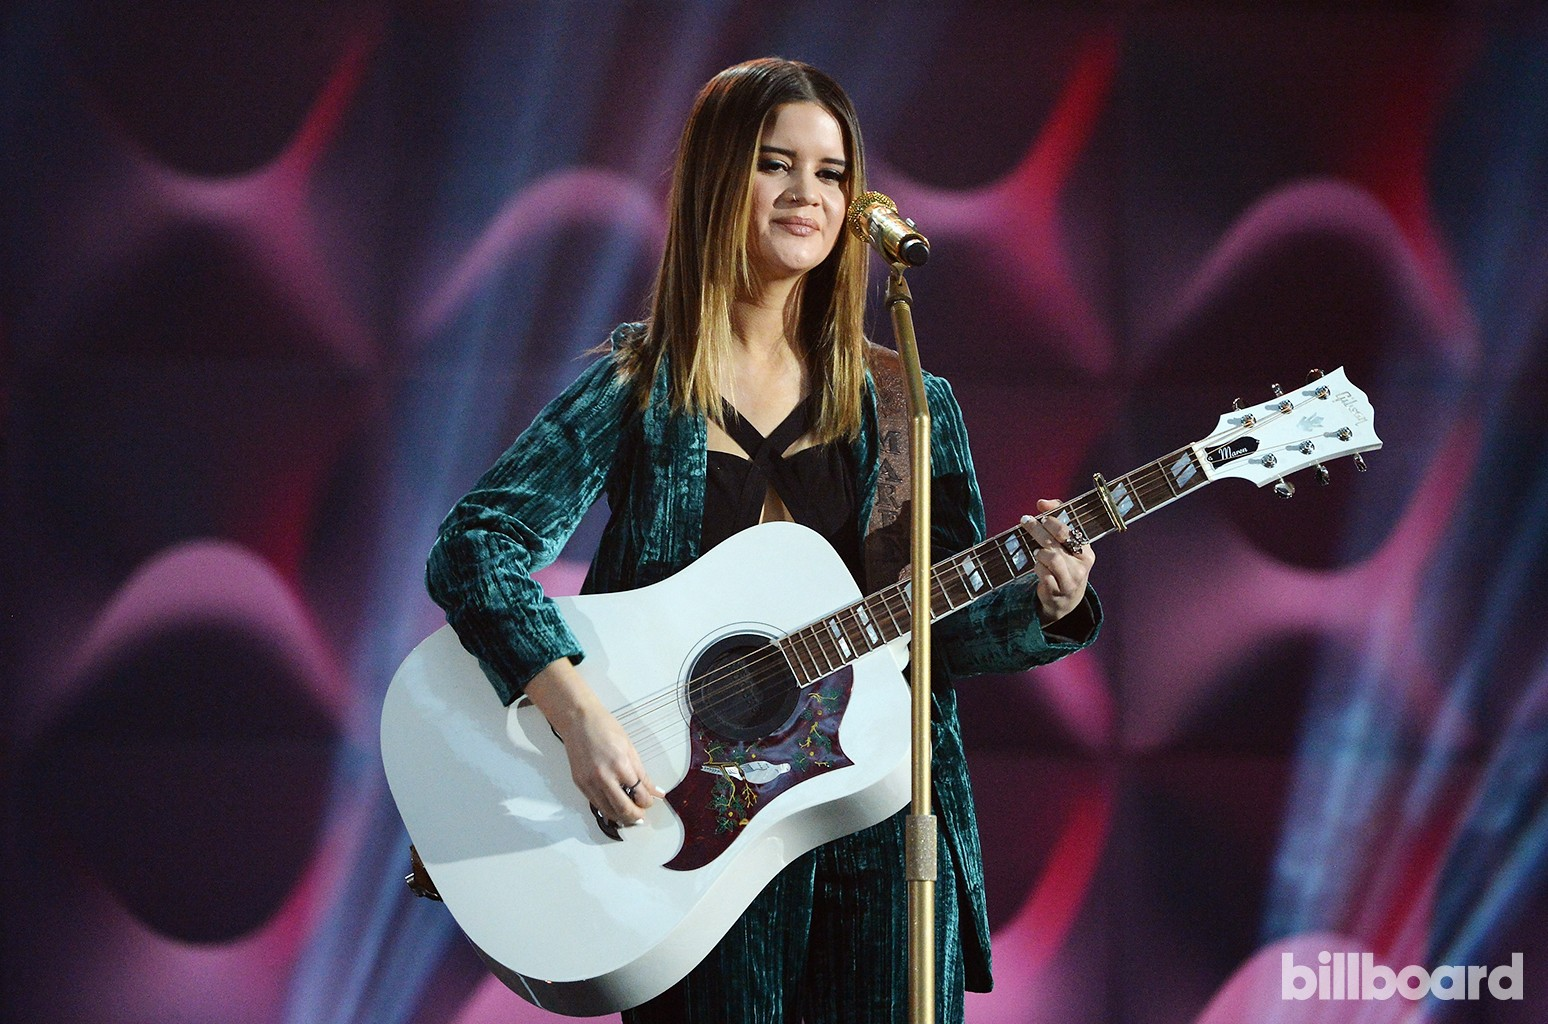 Maren Morris performs at the Billboard Women in Music 2016 event on Dec. 9, 2016 in New York City.